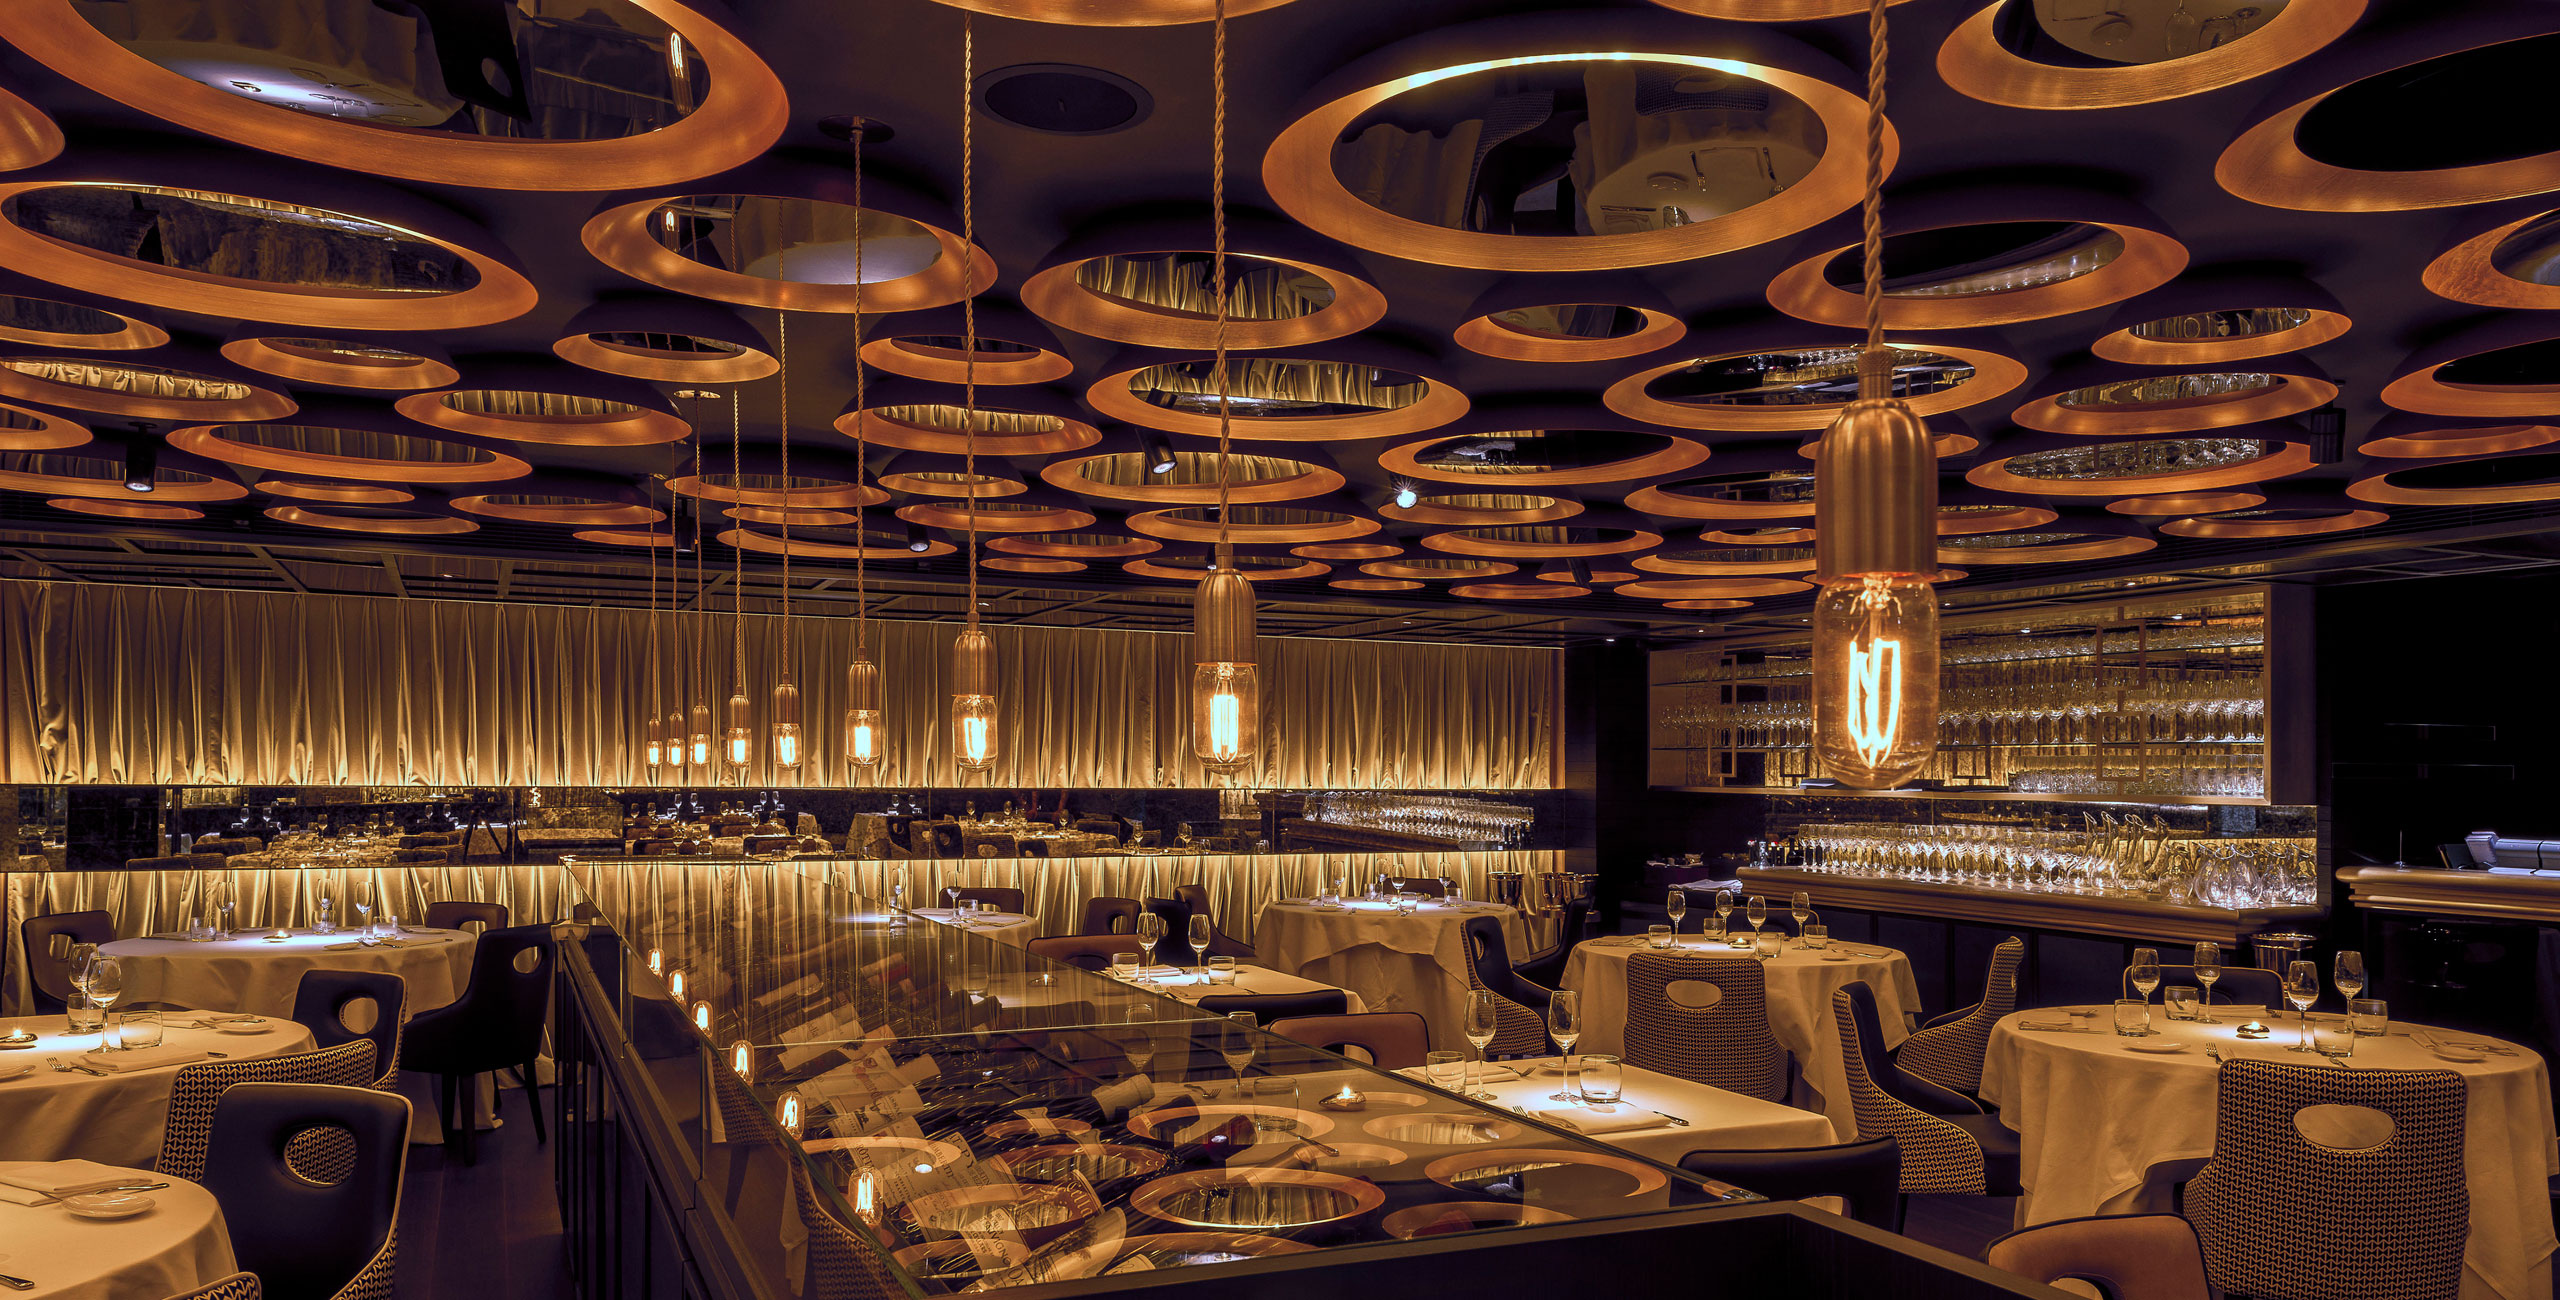 into lighting consultants design scheme for michelin starred il milione restaurant hong kong